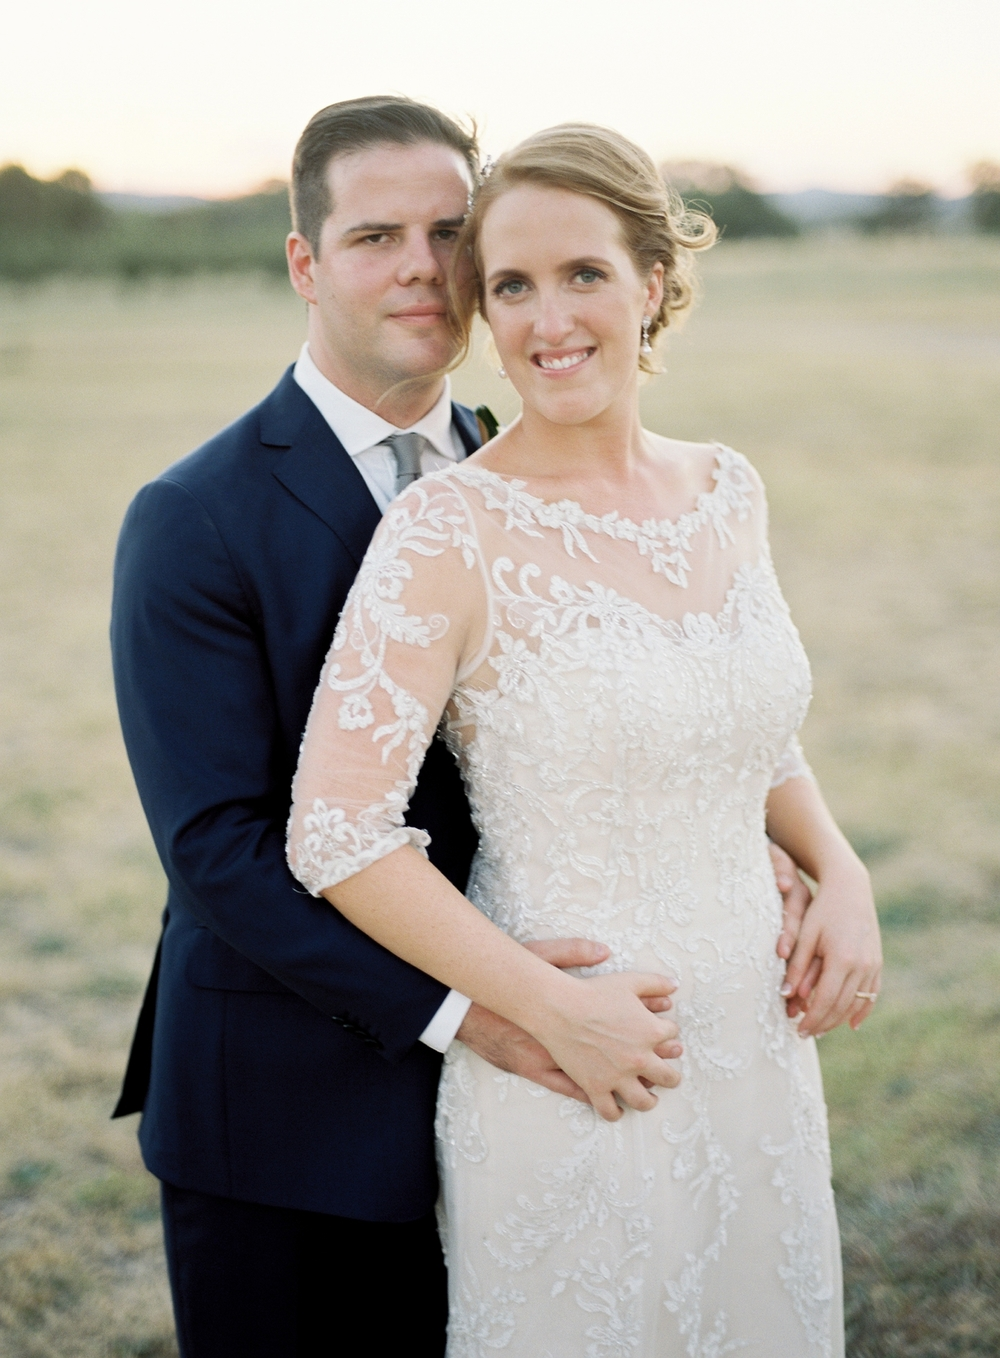 The Vine Grove Mudgee Wedding, Photography by Mr Edwards_1820.jpg